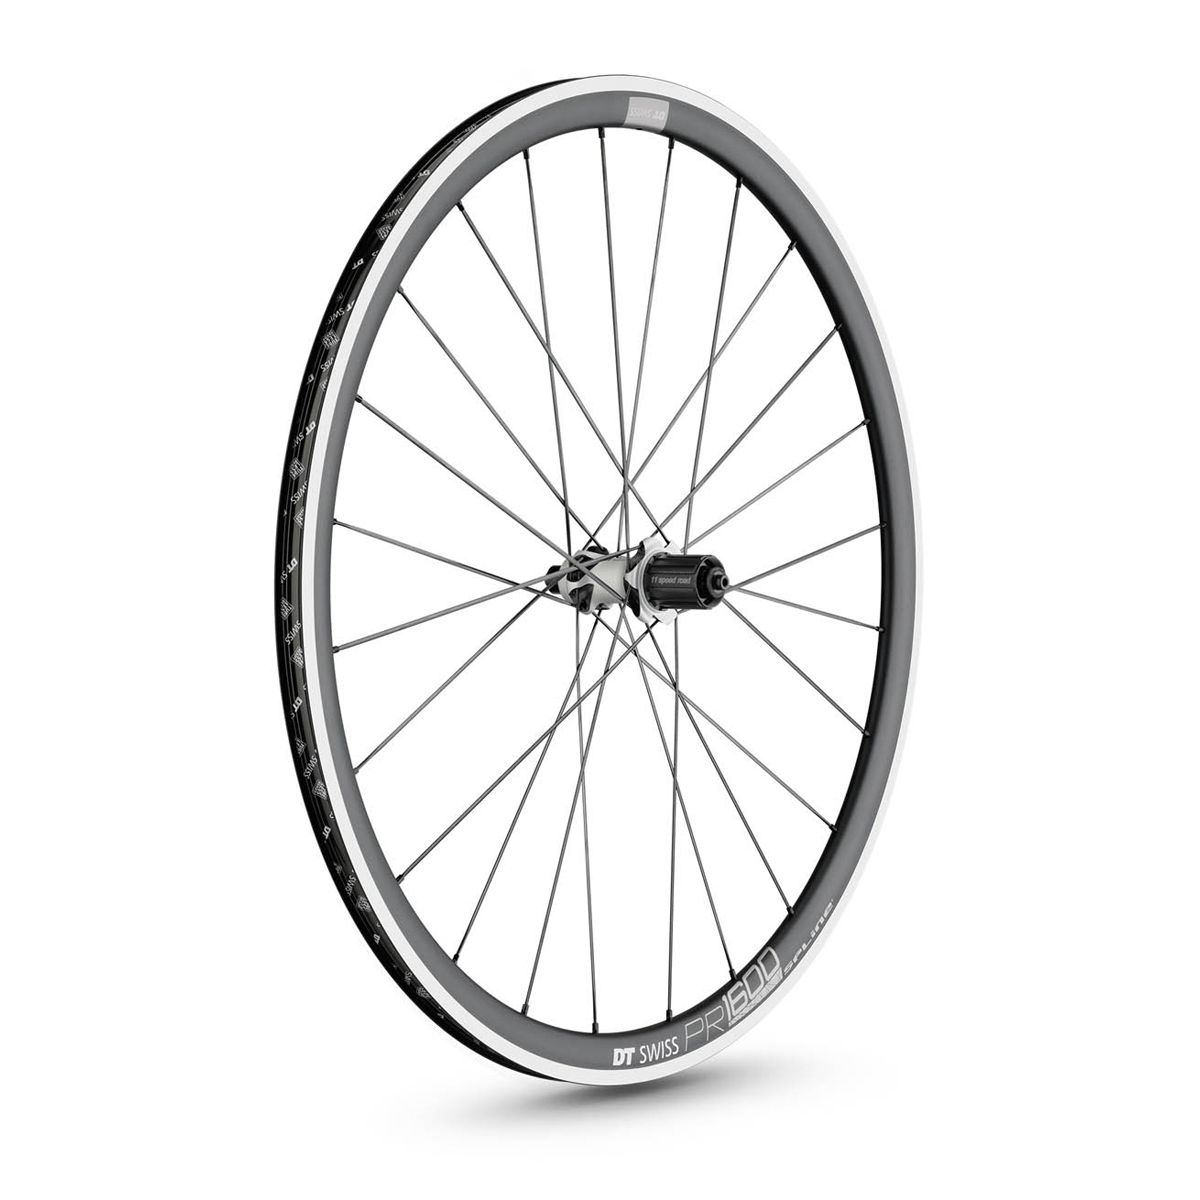 PR 1600 Spline 32 road rear wheel 28